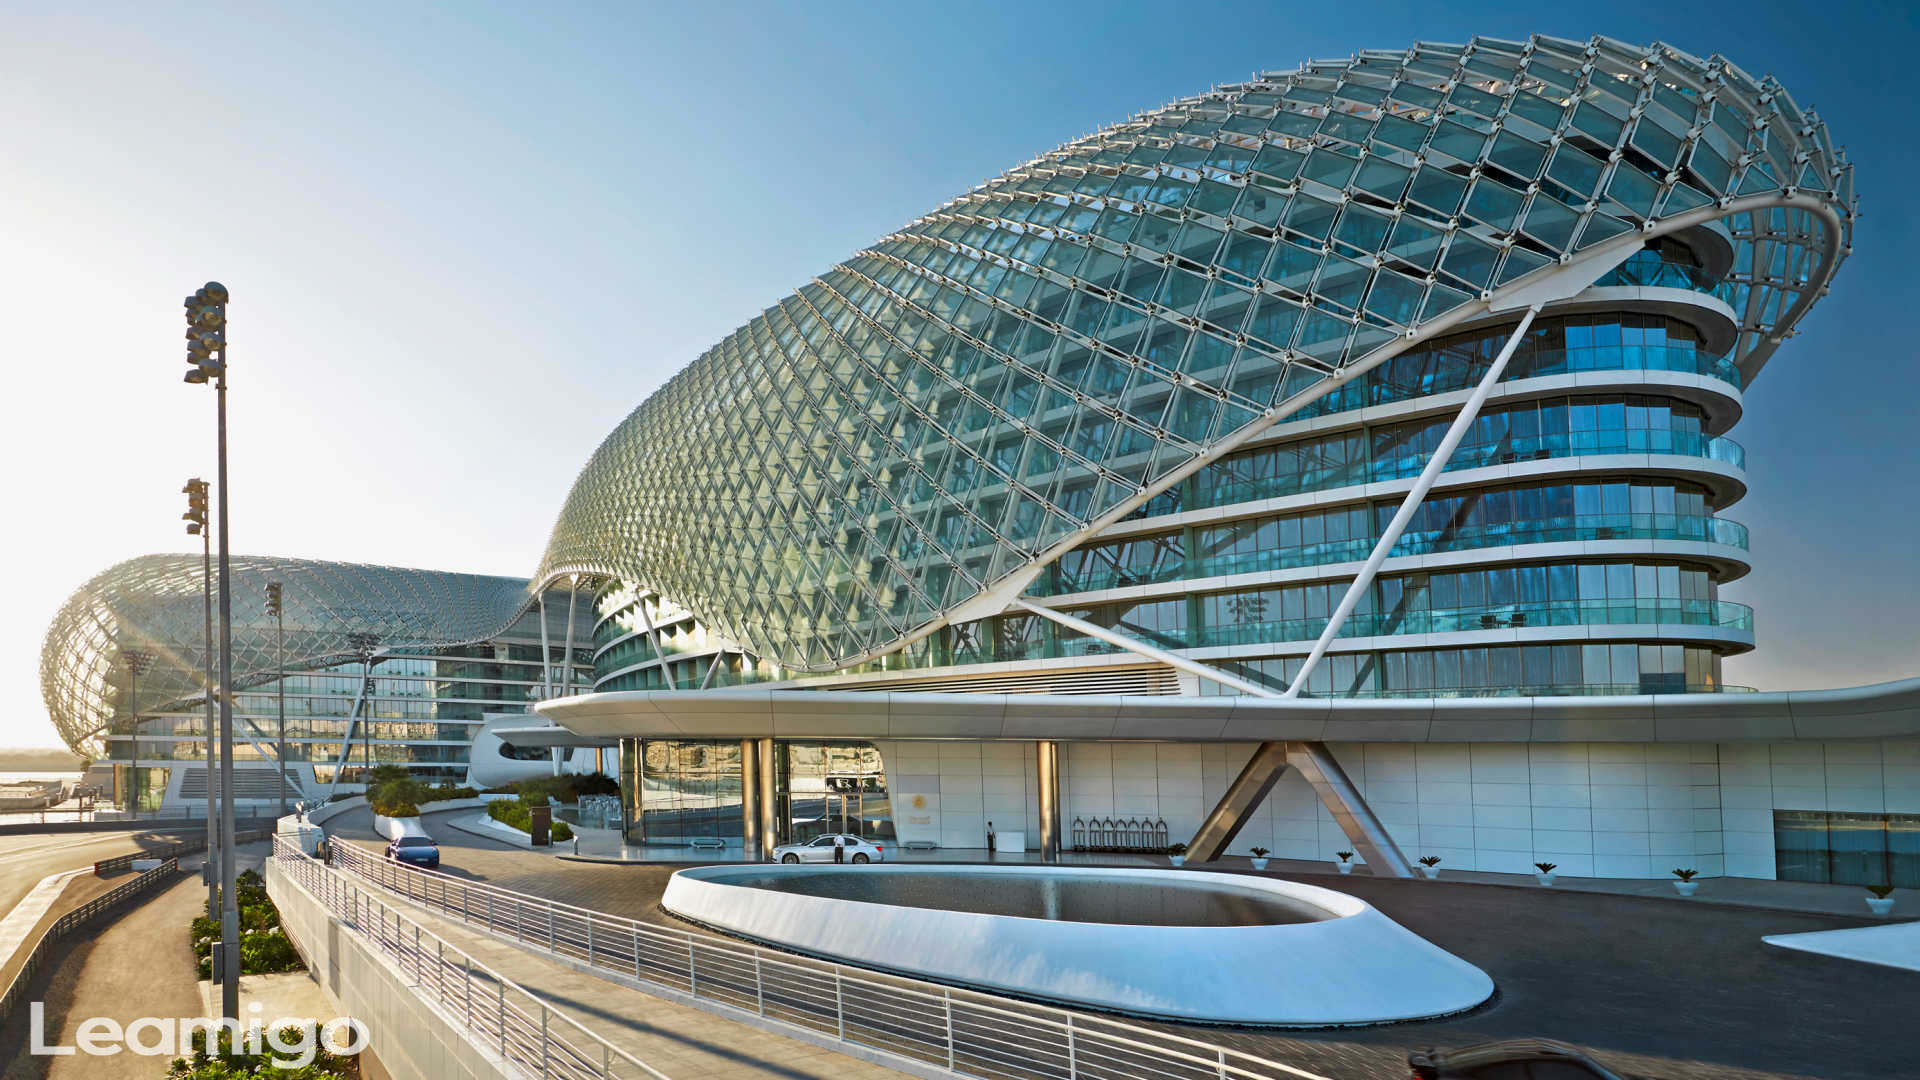 Private Transfers To Yas Island Abu Dhabi Attractions